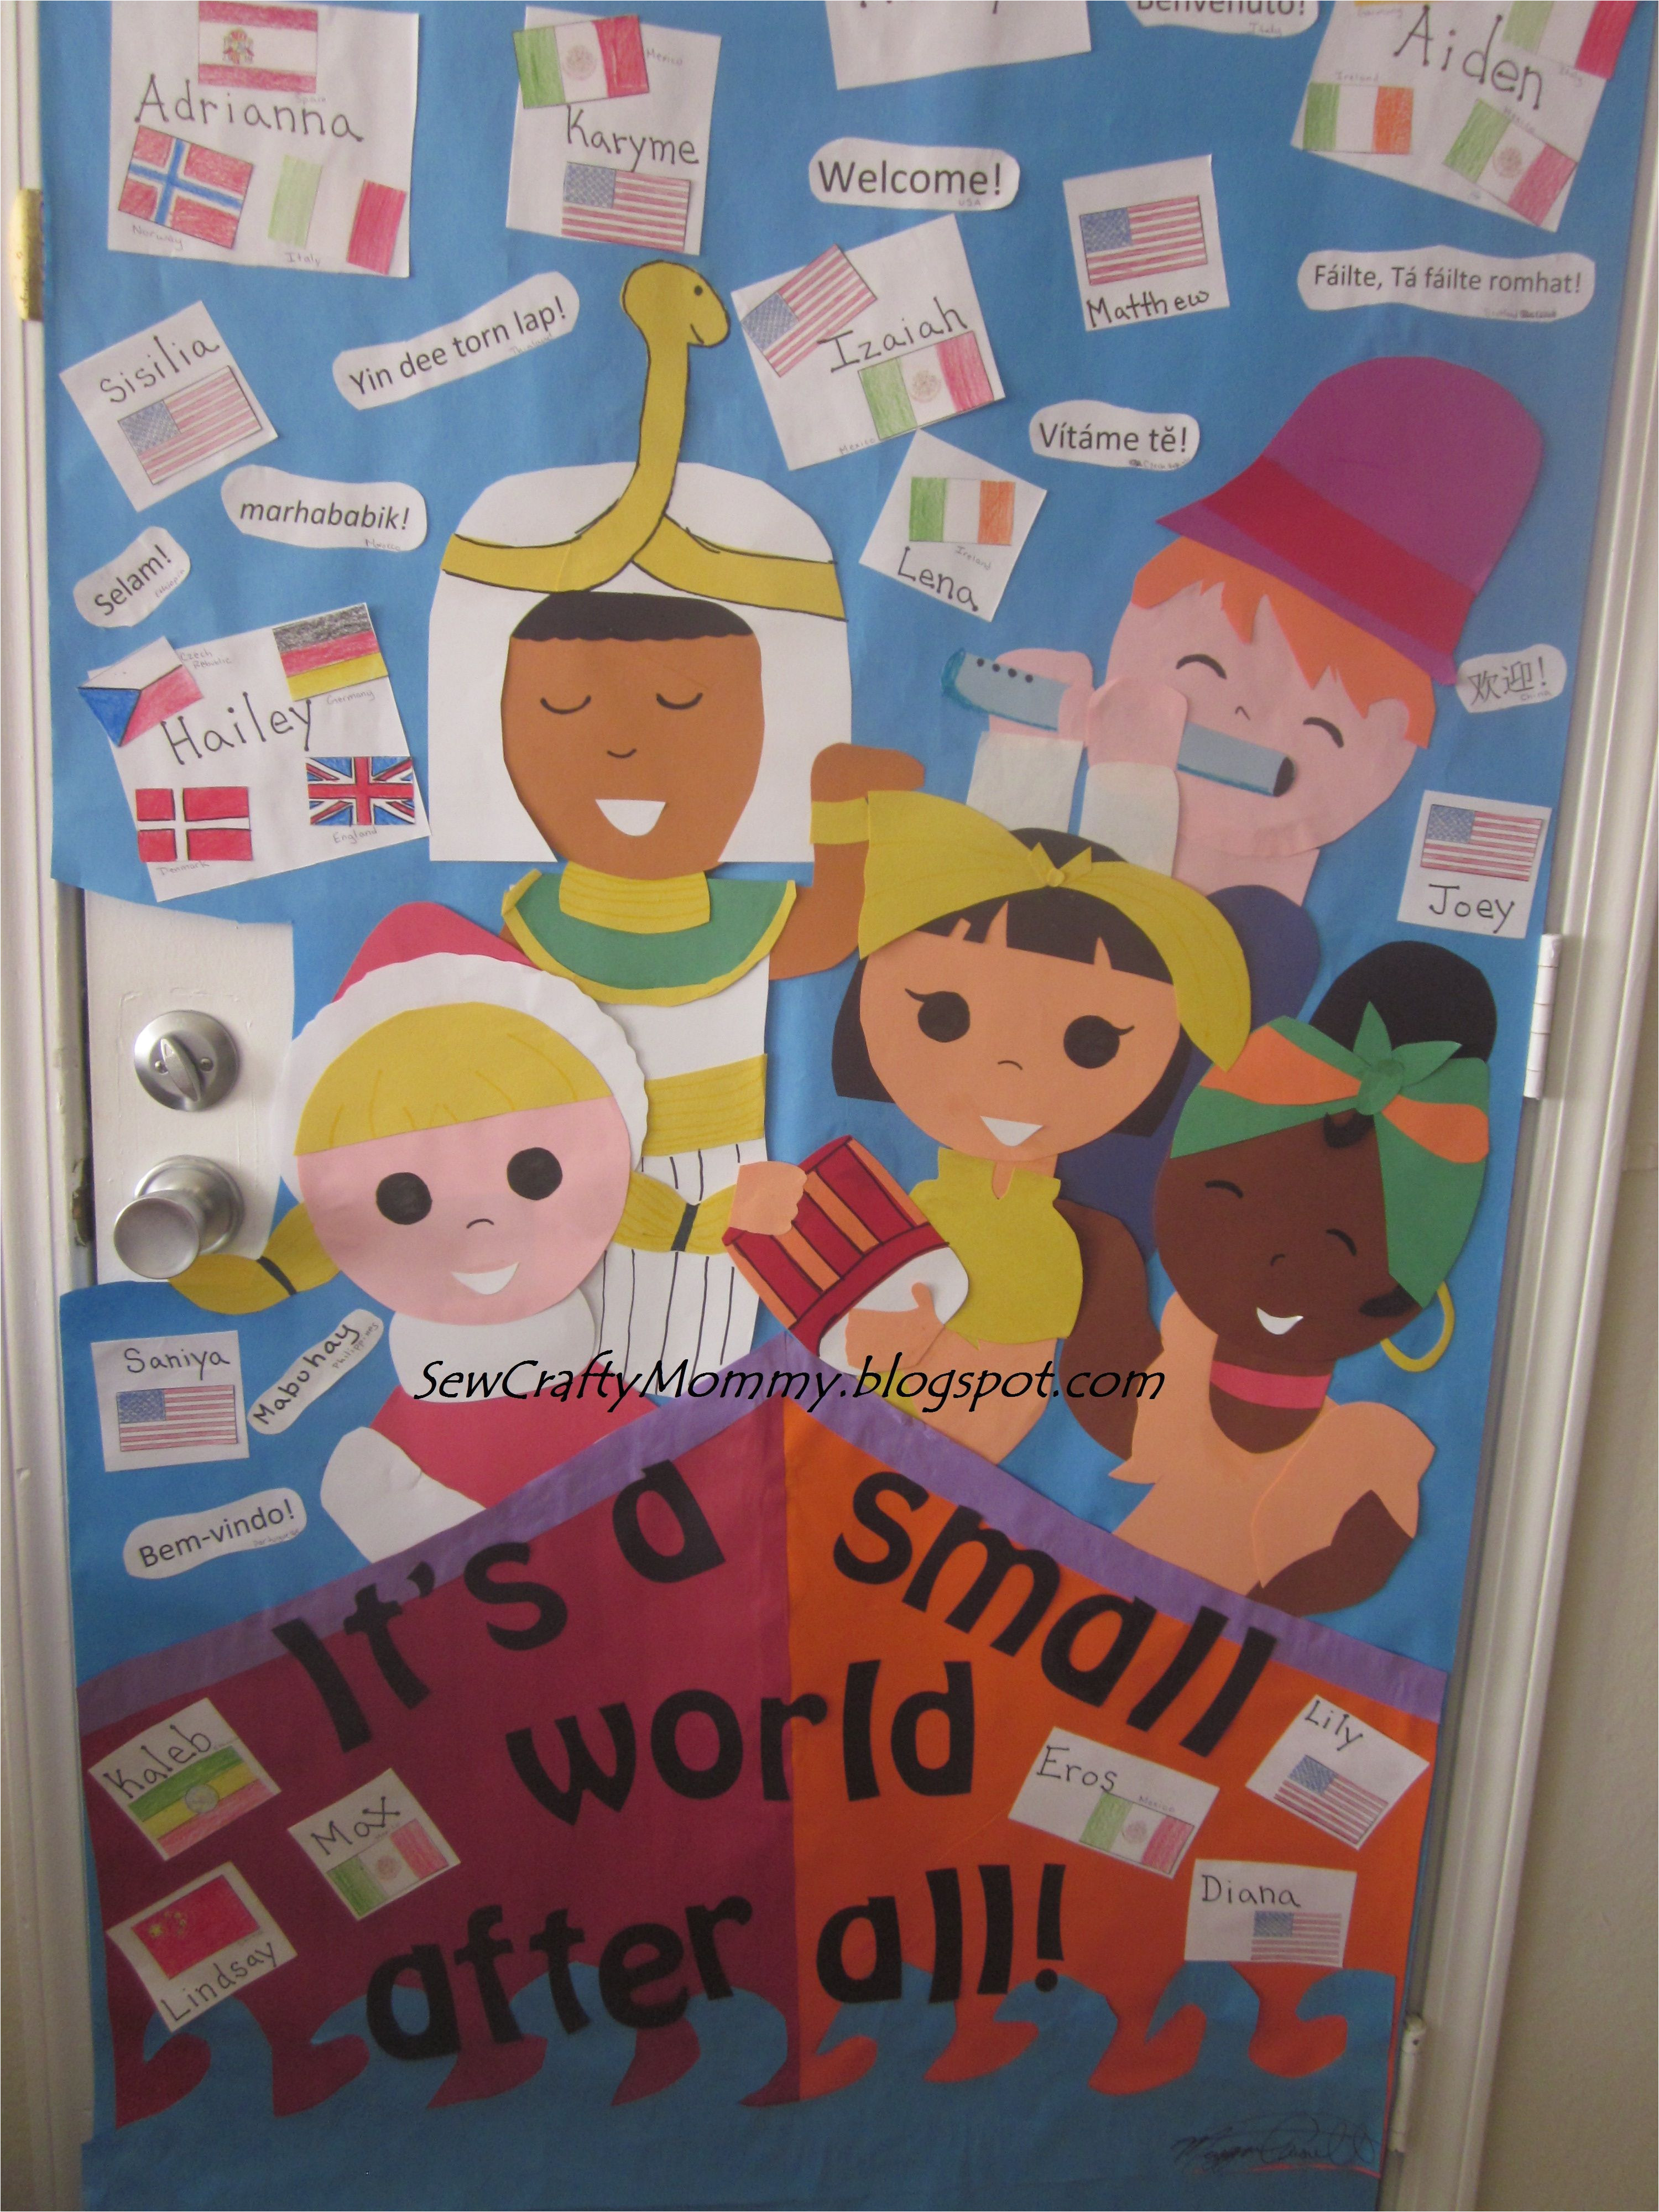 multicultural week for school door decoration it s a small world spin off